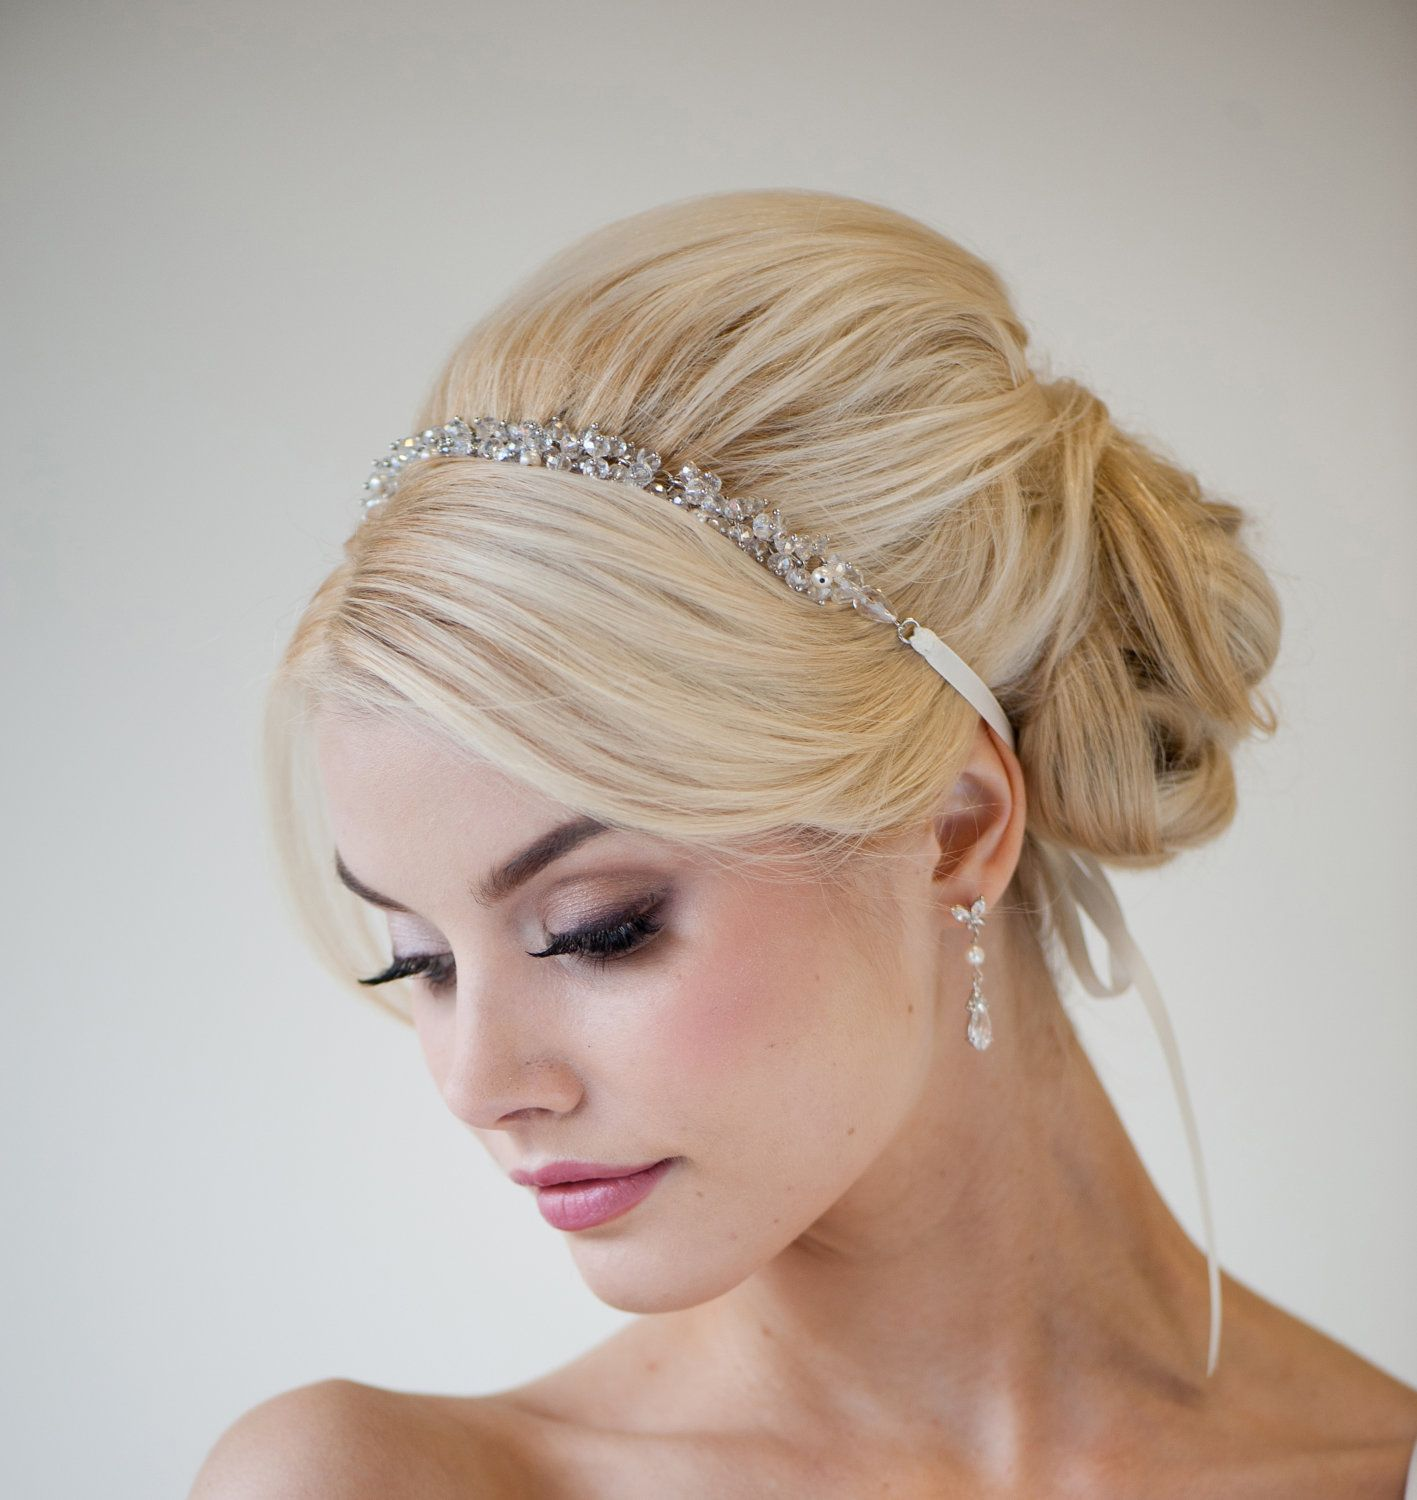 24 Mind Blowingly Beautiful Wedding Hairstyles